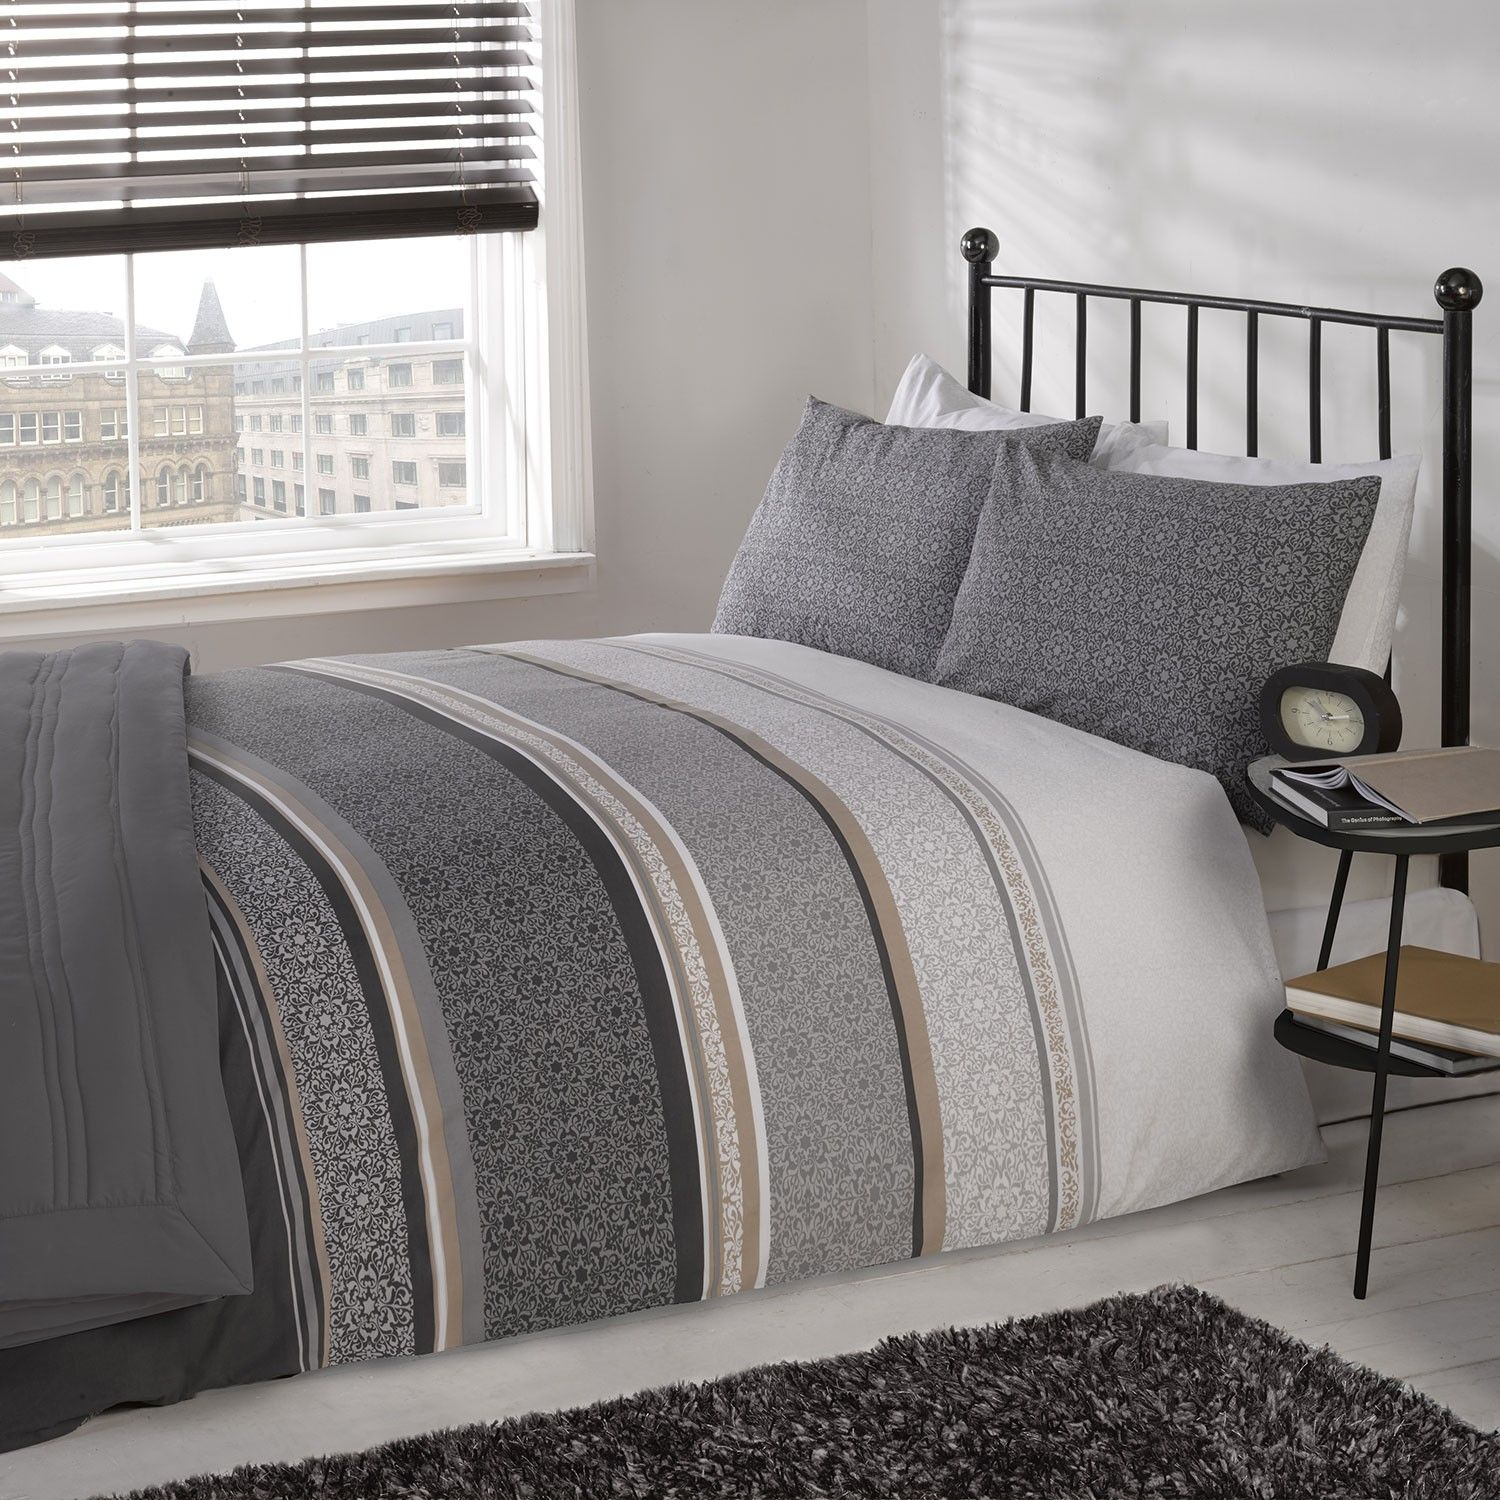 covers dead zangge curtains cover sets luxury set silk throw comforter flat bedding colour gorgeous ruffles faux crib baby duvet pillowcases collections beautiful embroidered include jacquard stylish satin silver drop and stunning inspiration black nursery sheet scenic bedspread